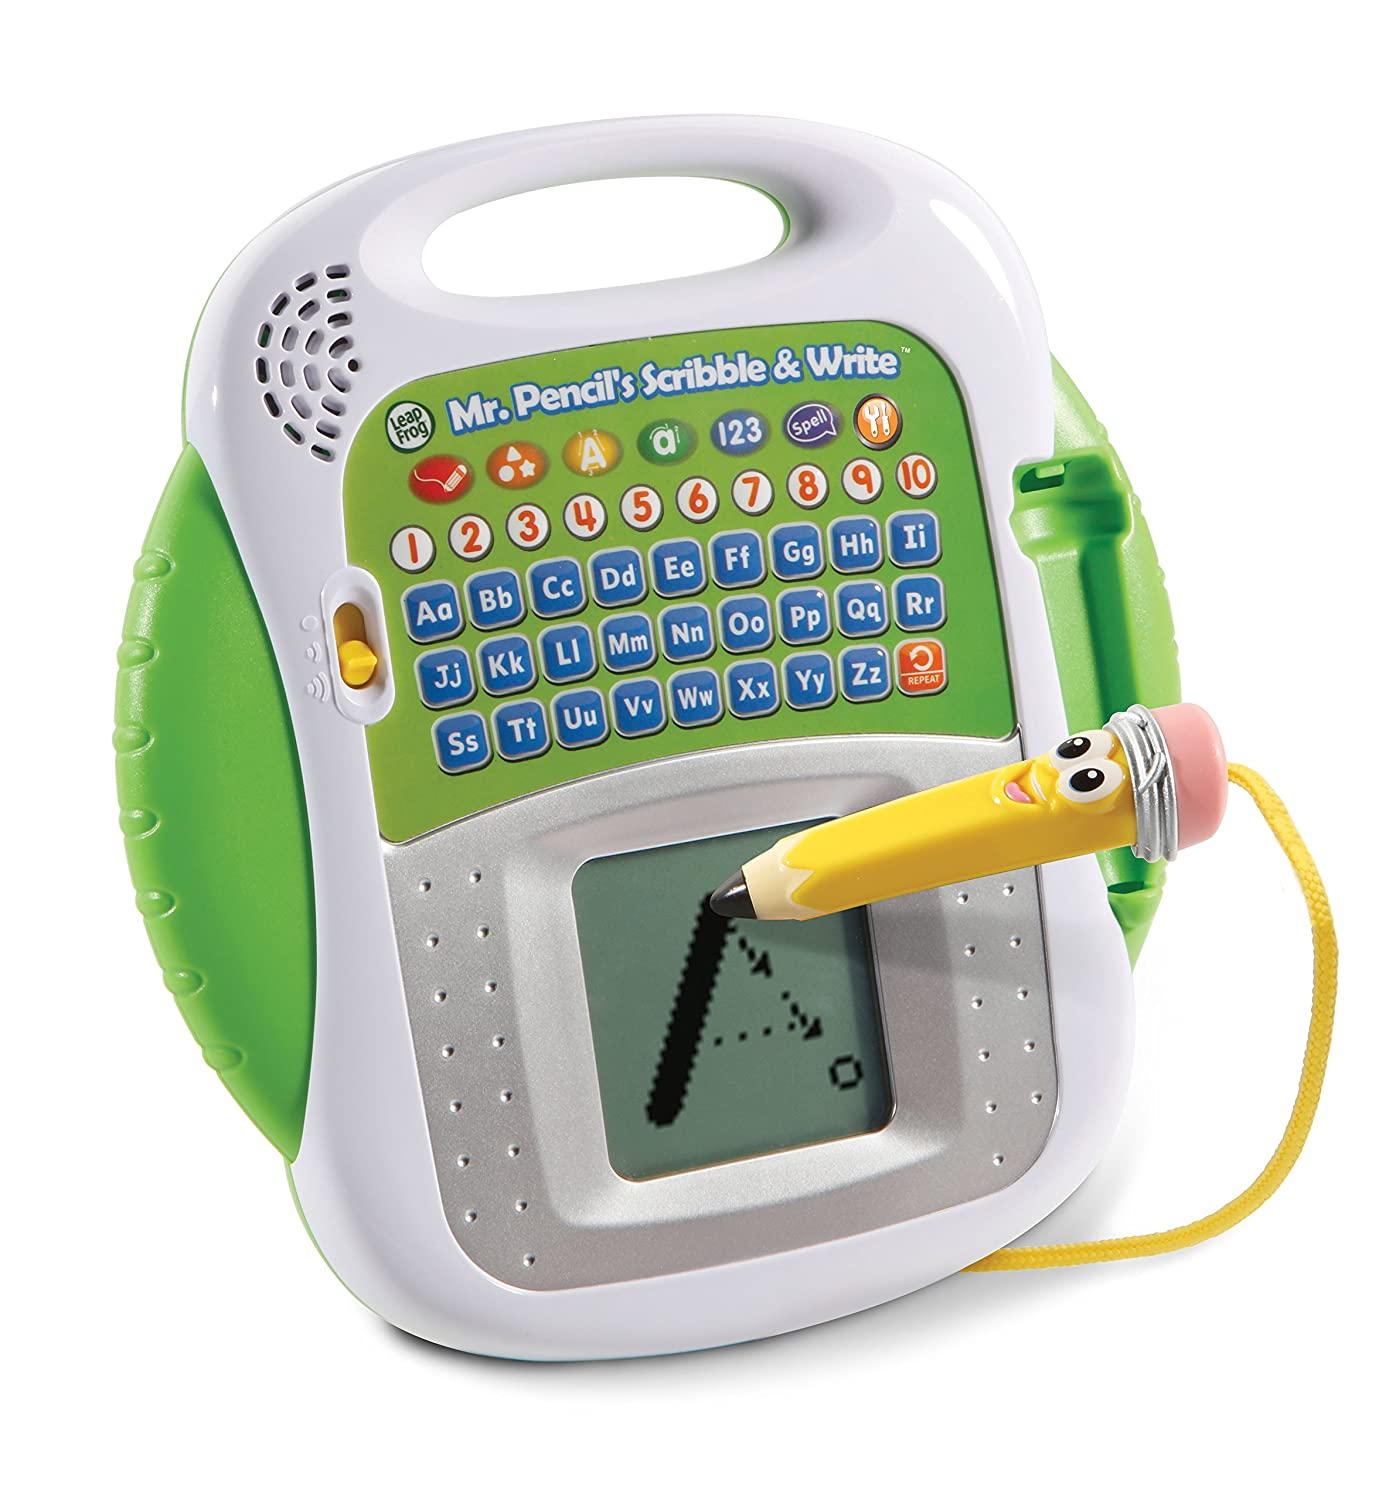 Image result for LeapFrog Scribble and Write amazon